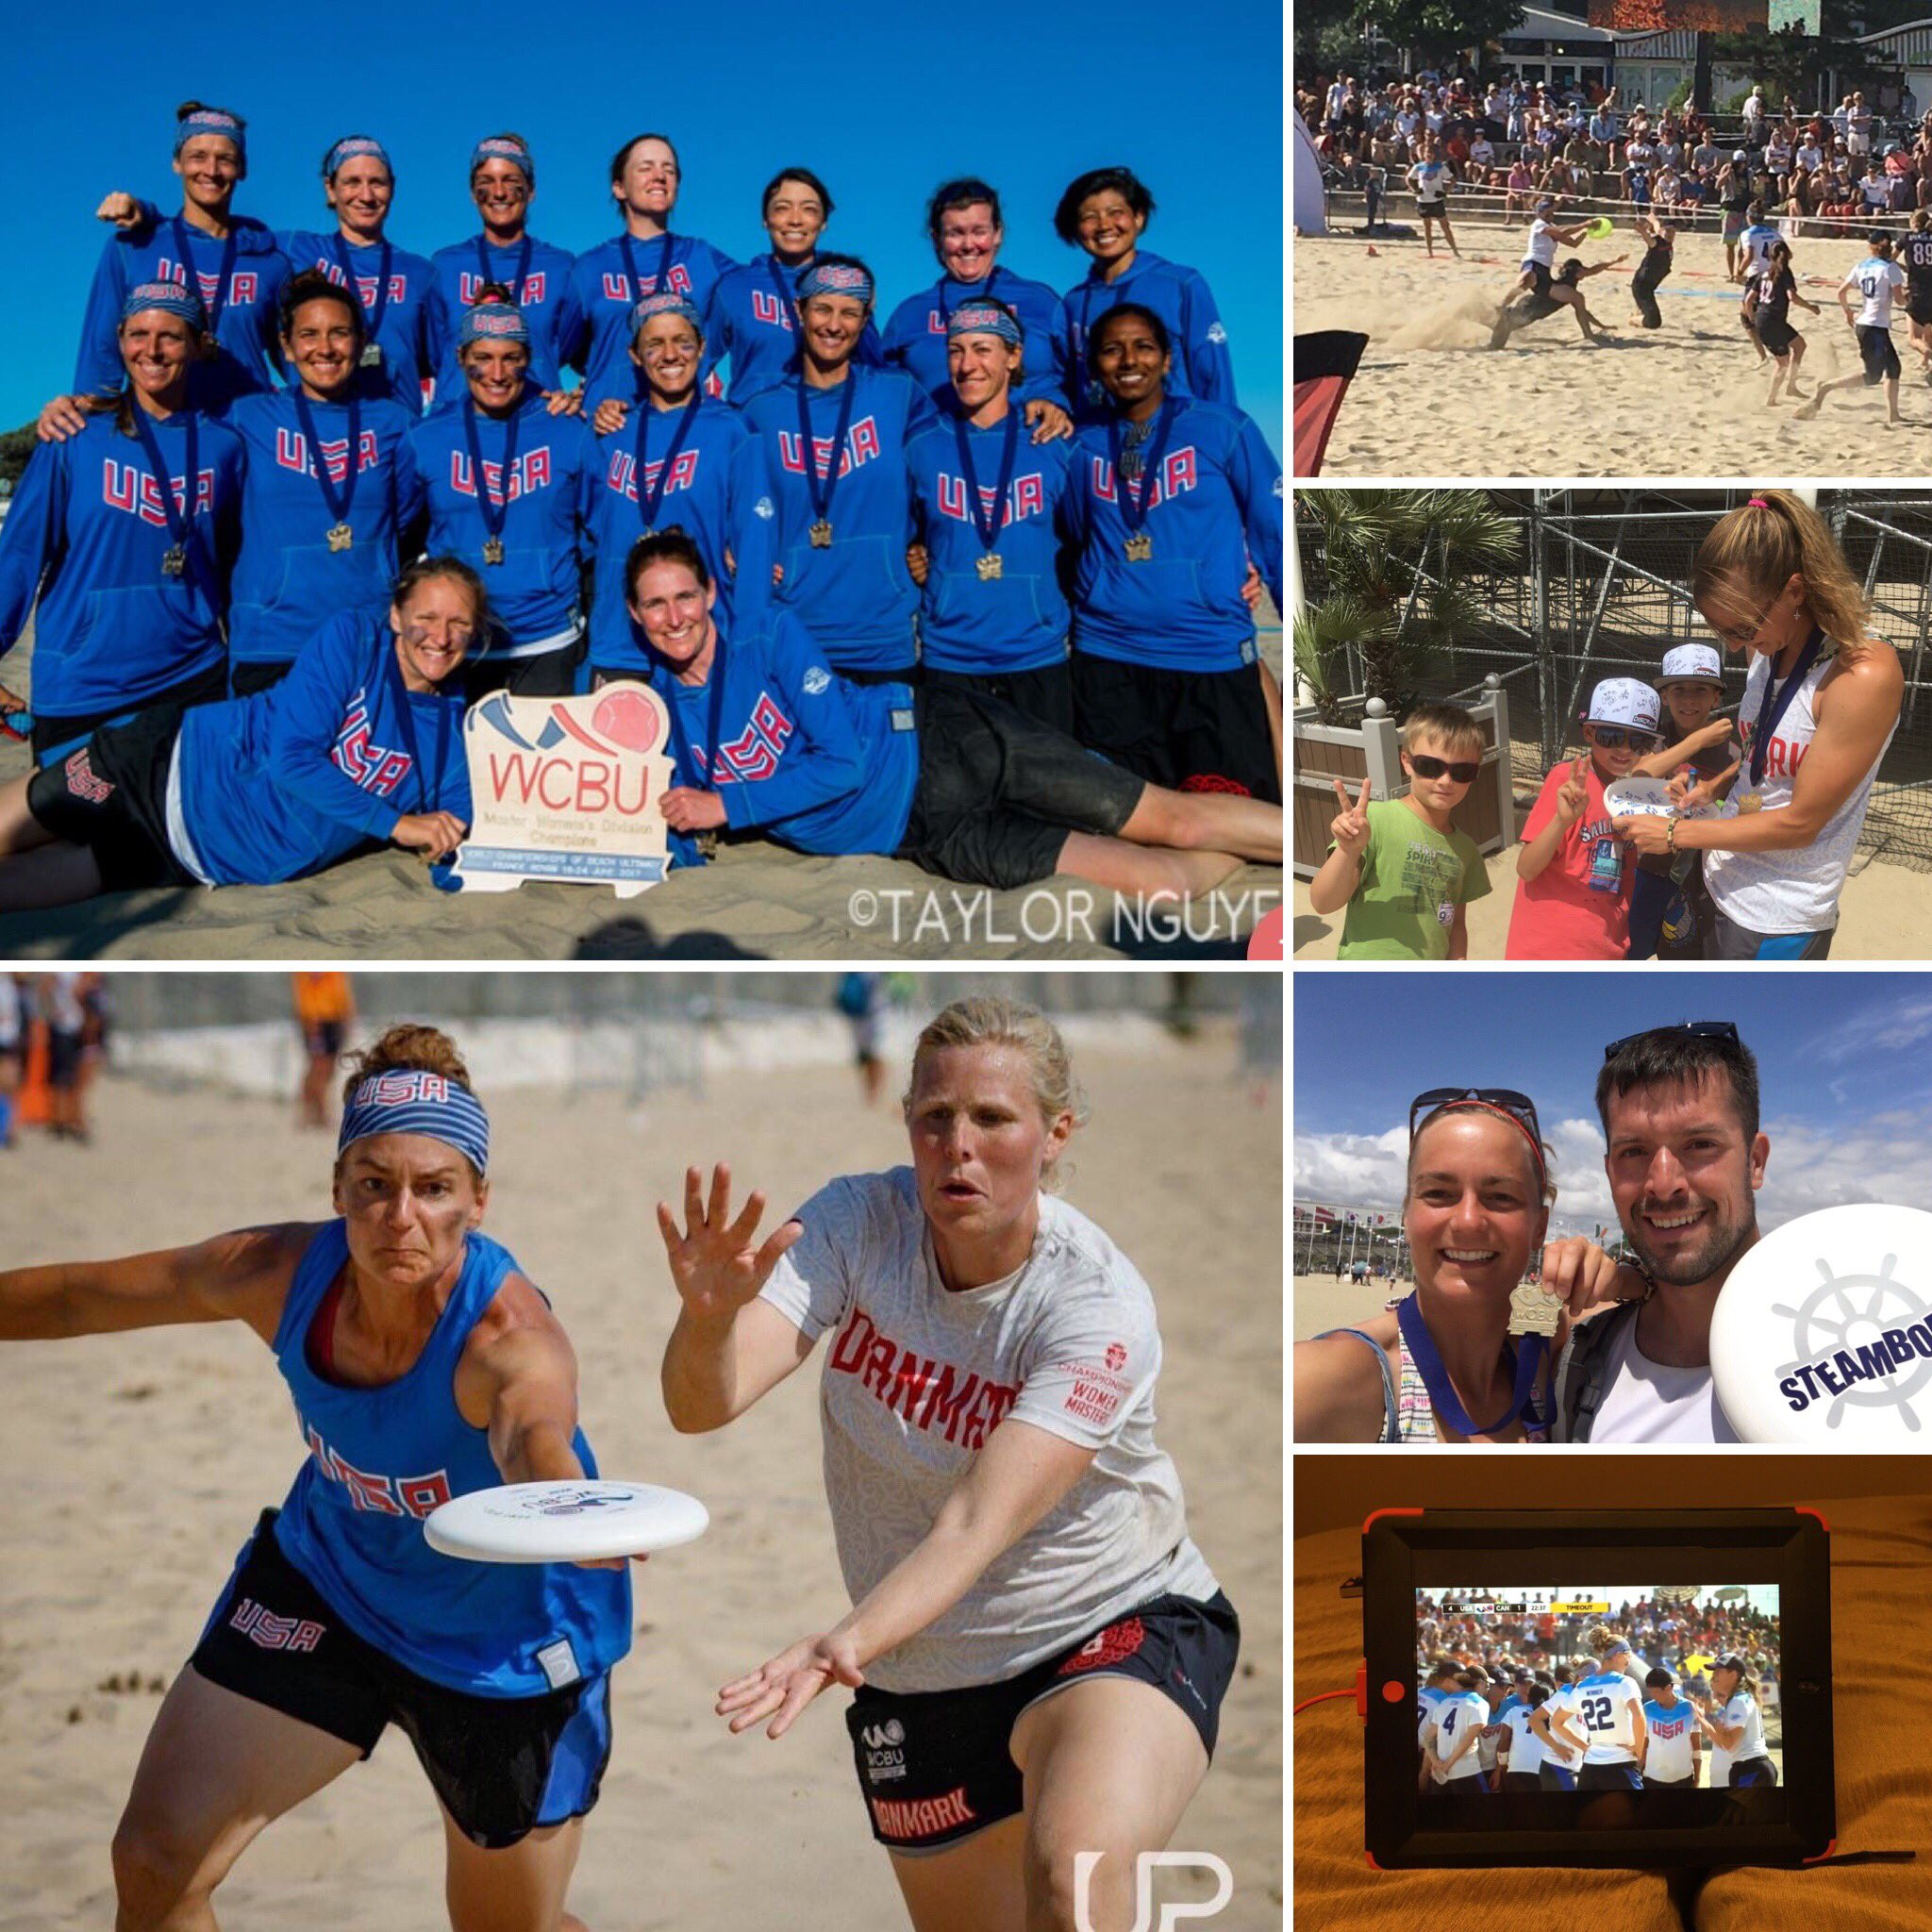 Late congrats to @bwinner22 for gold medal #2 at @wcbu2017 in June! Way to #reptheboat! #GoBrittGo #WCBU2017 ?✌️?? https://t.co/kJ7QWLbo9h <a href='https://twitter.com/beachboatulty/status/889611508883304448/photo/1' target='_blank'>See original »</a>